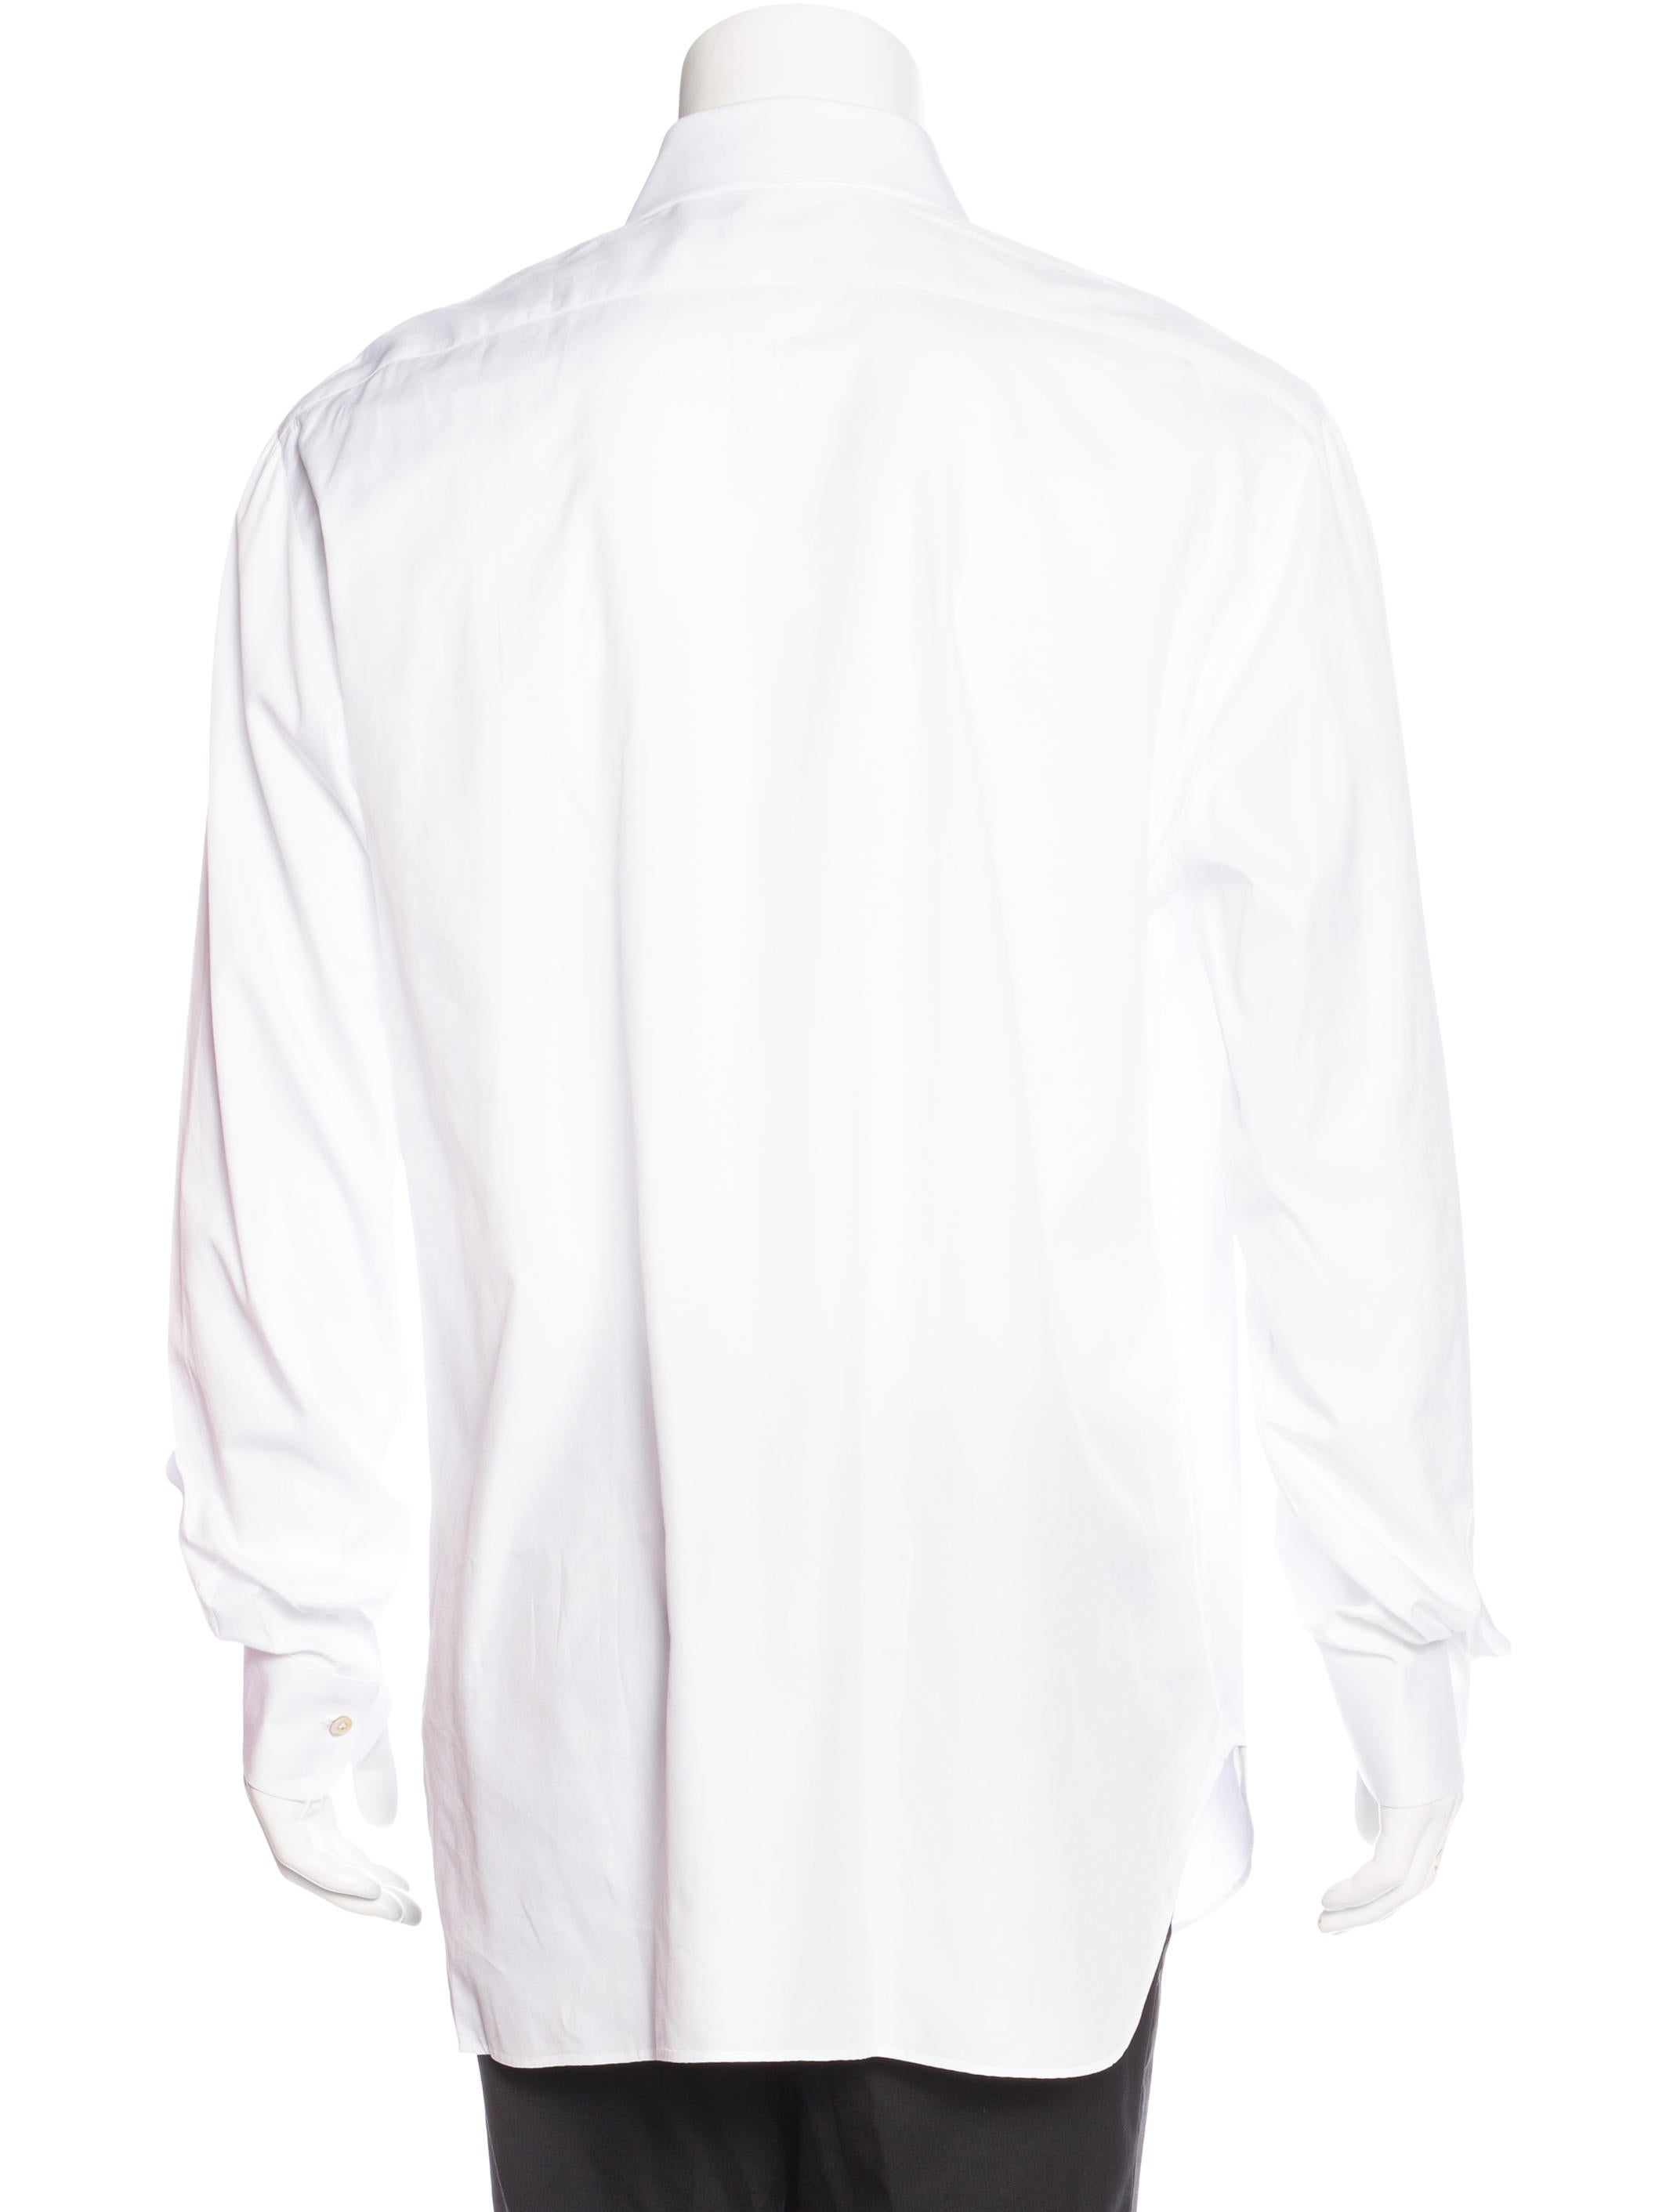 Kiton french cuff button up shirt clothing kit21390 for French cuff dress shirts for sale